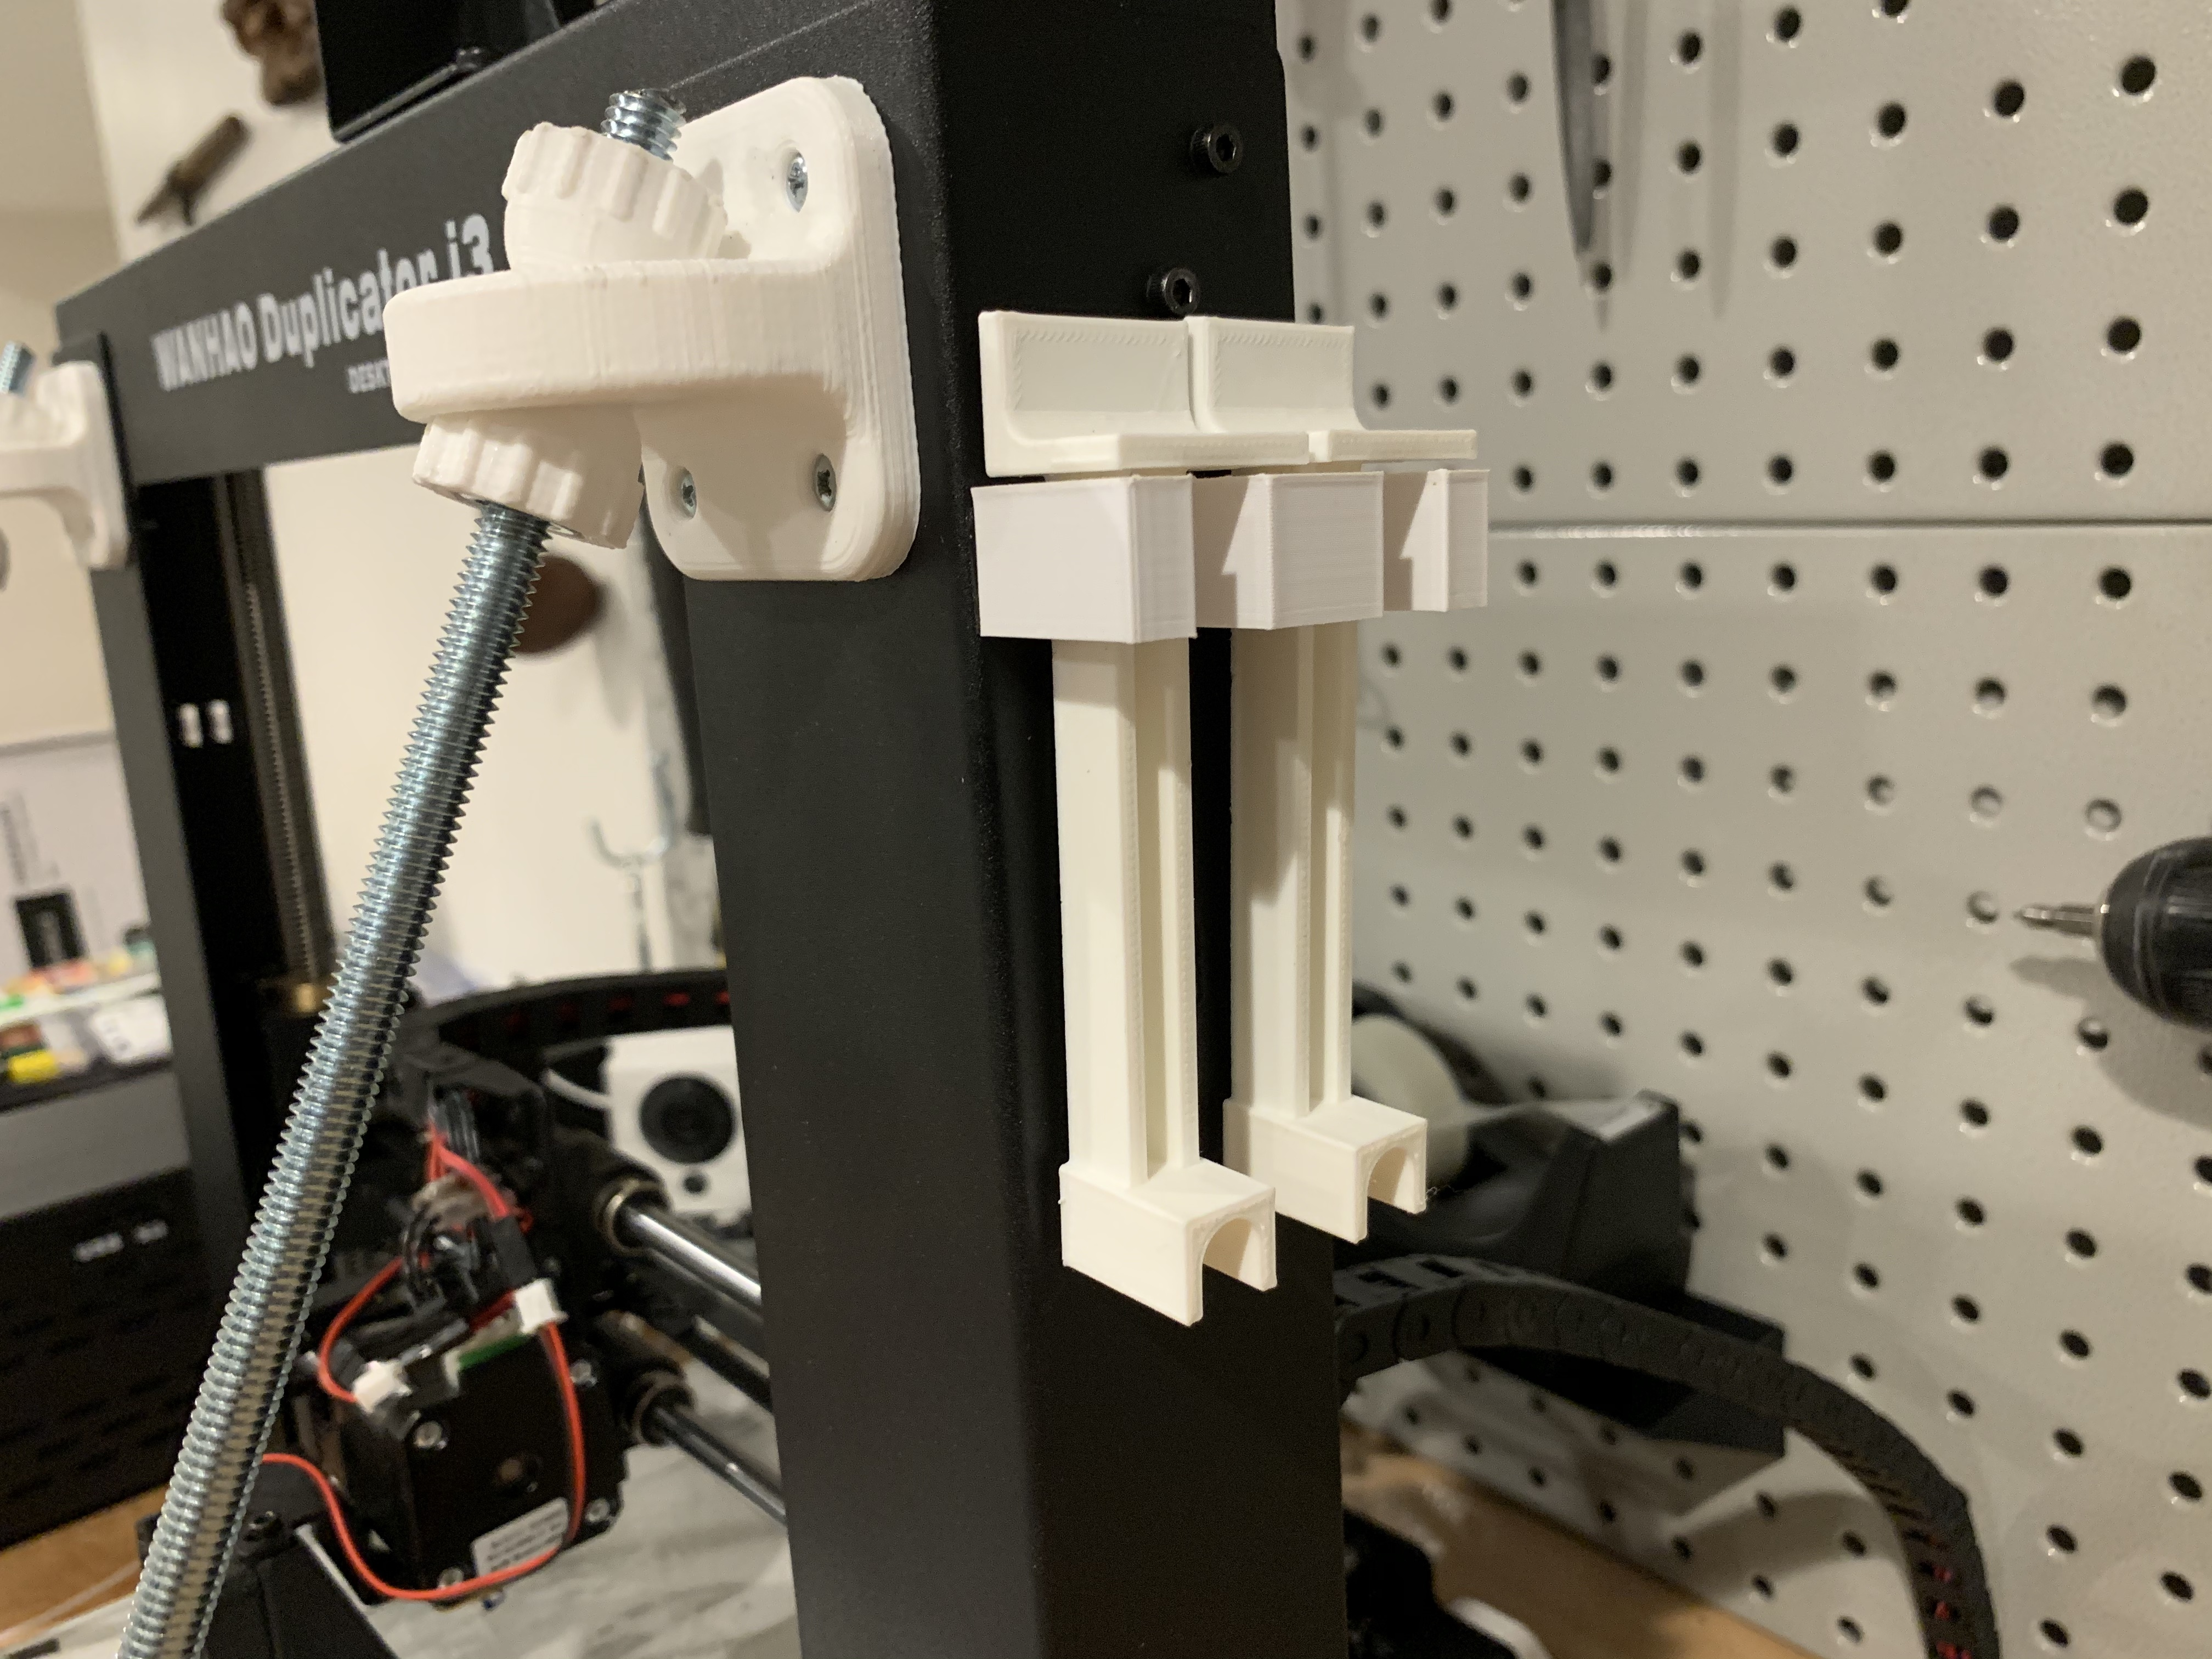 20190724_021642269_iOS.jpg Download free STL file Holder for Z-axis alignment bars for Wanhao Di3 • Design to 3D print, fuchsr